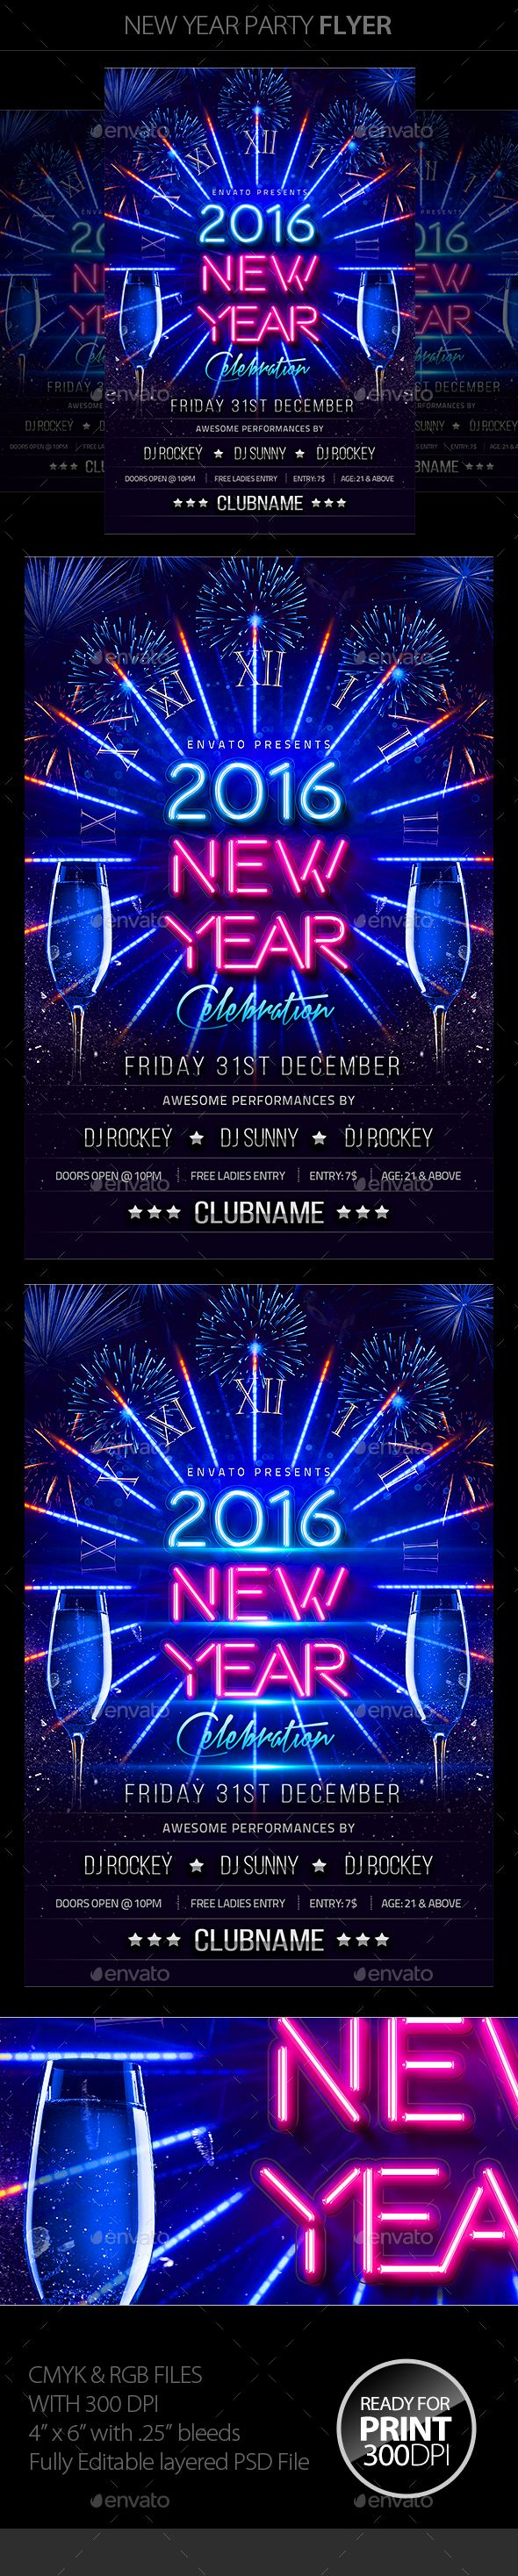 New Year Party Flyer Template PSD #design Download: http://graphicriver.net/item/new-year-party-flyer/13535217?ref=ksioks